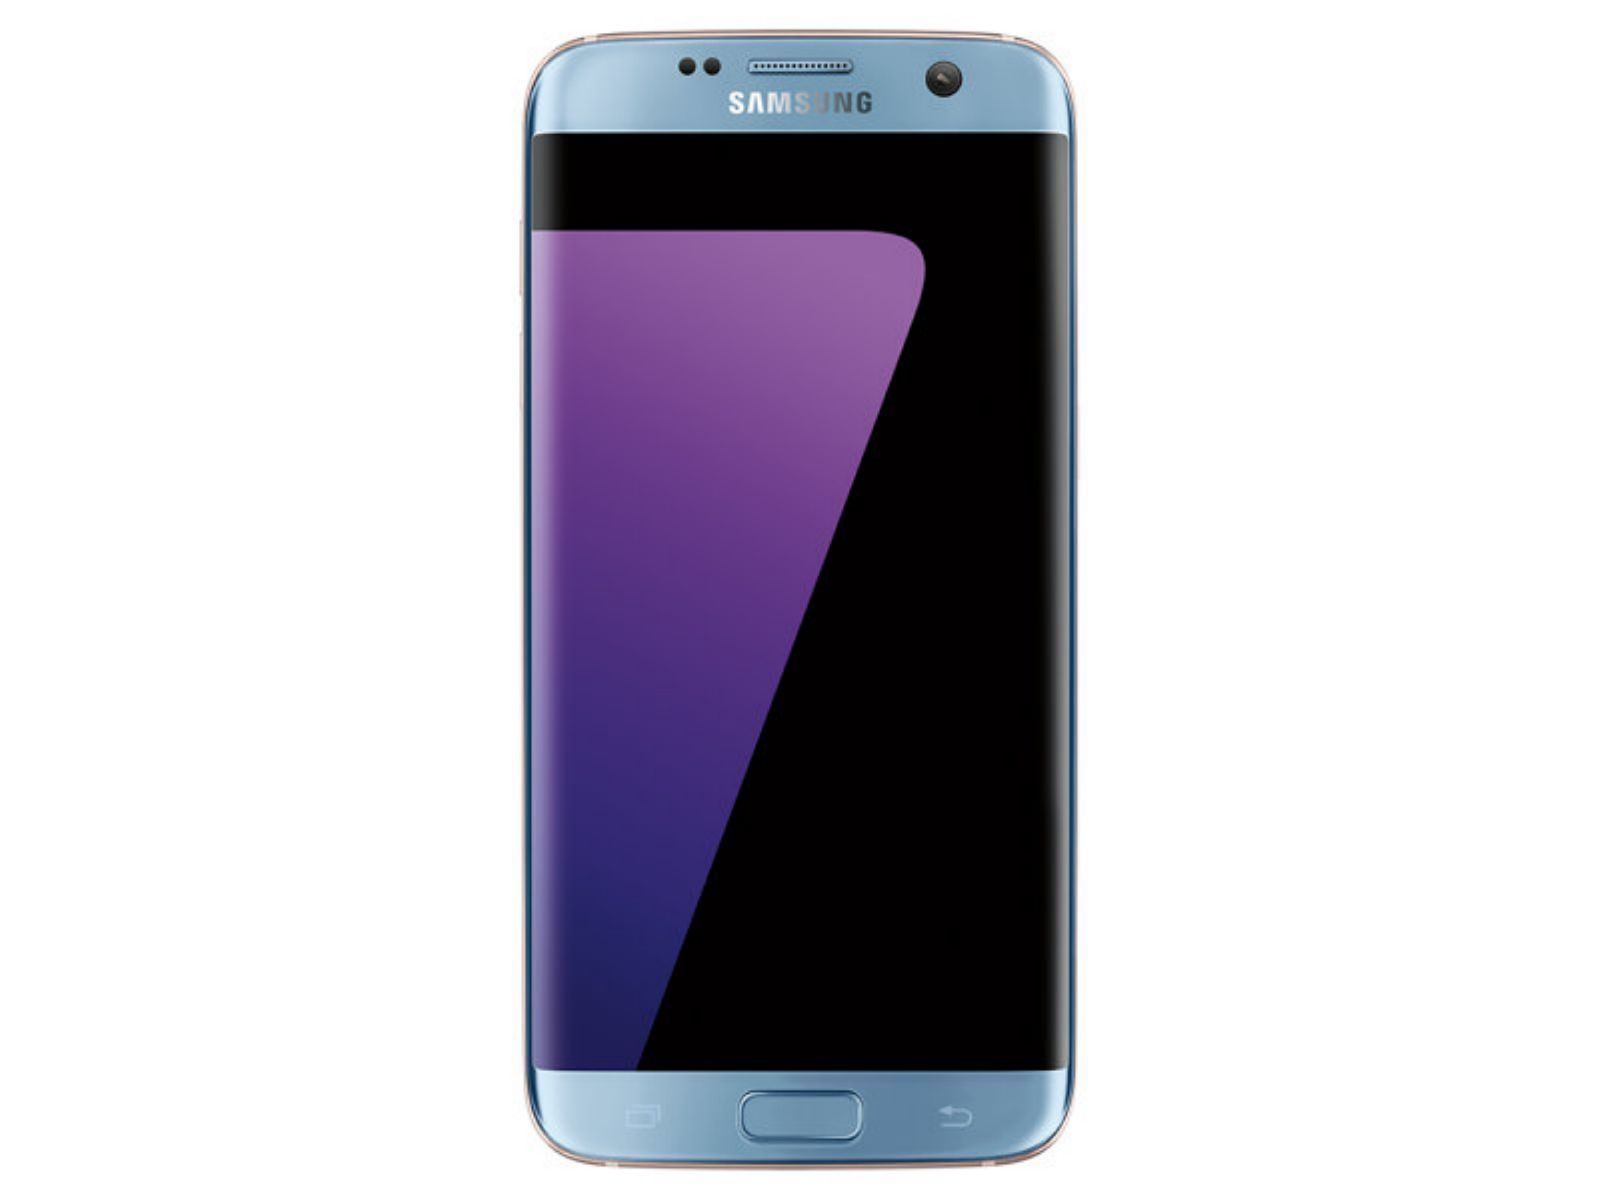 Samsung Galaxy S7 Edge G935 - 32GB - Factory GSM Unlocked AT&T T-Mobile